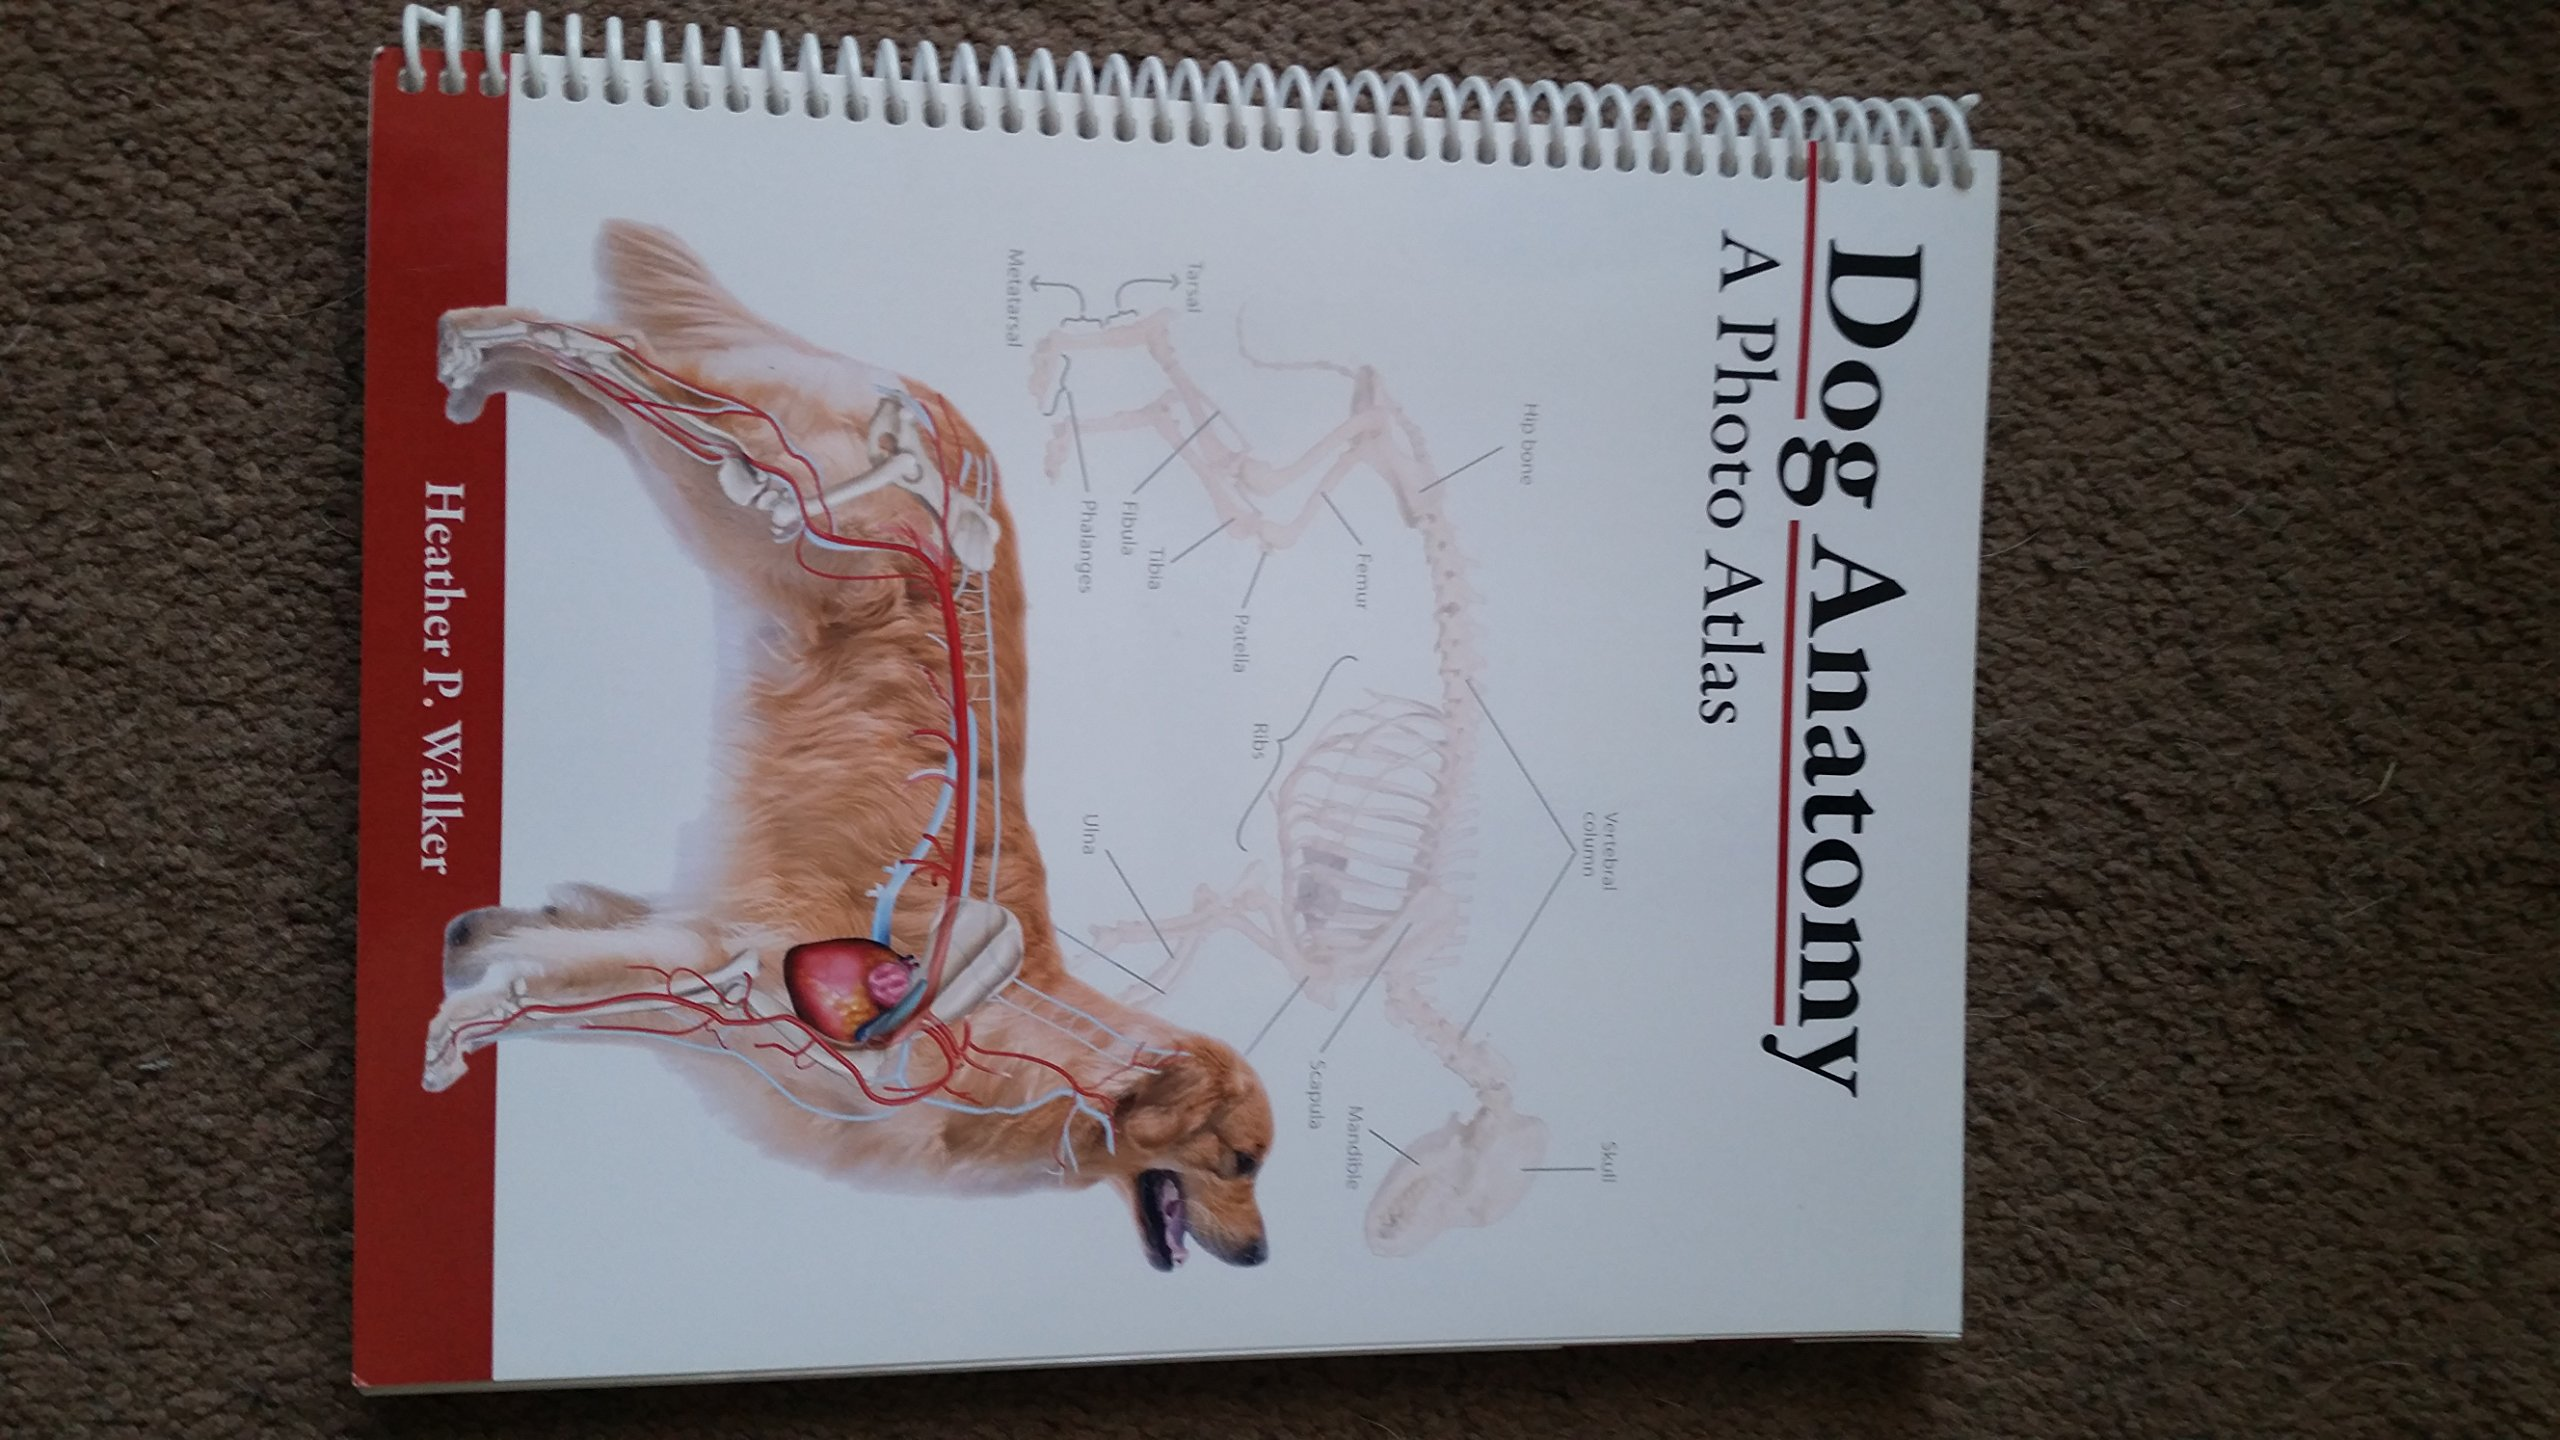 Dog Anatomy: A Photo Atlas: Heather P. Walker: 9781599842912: Amazon ...